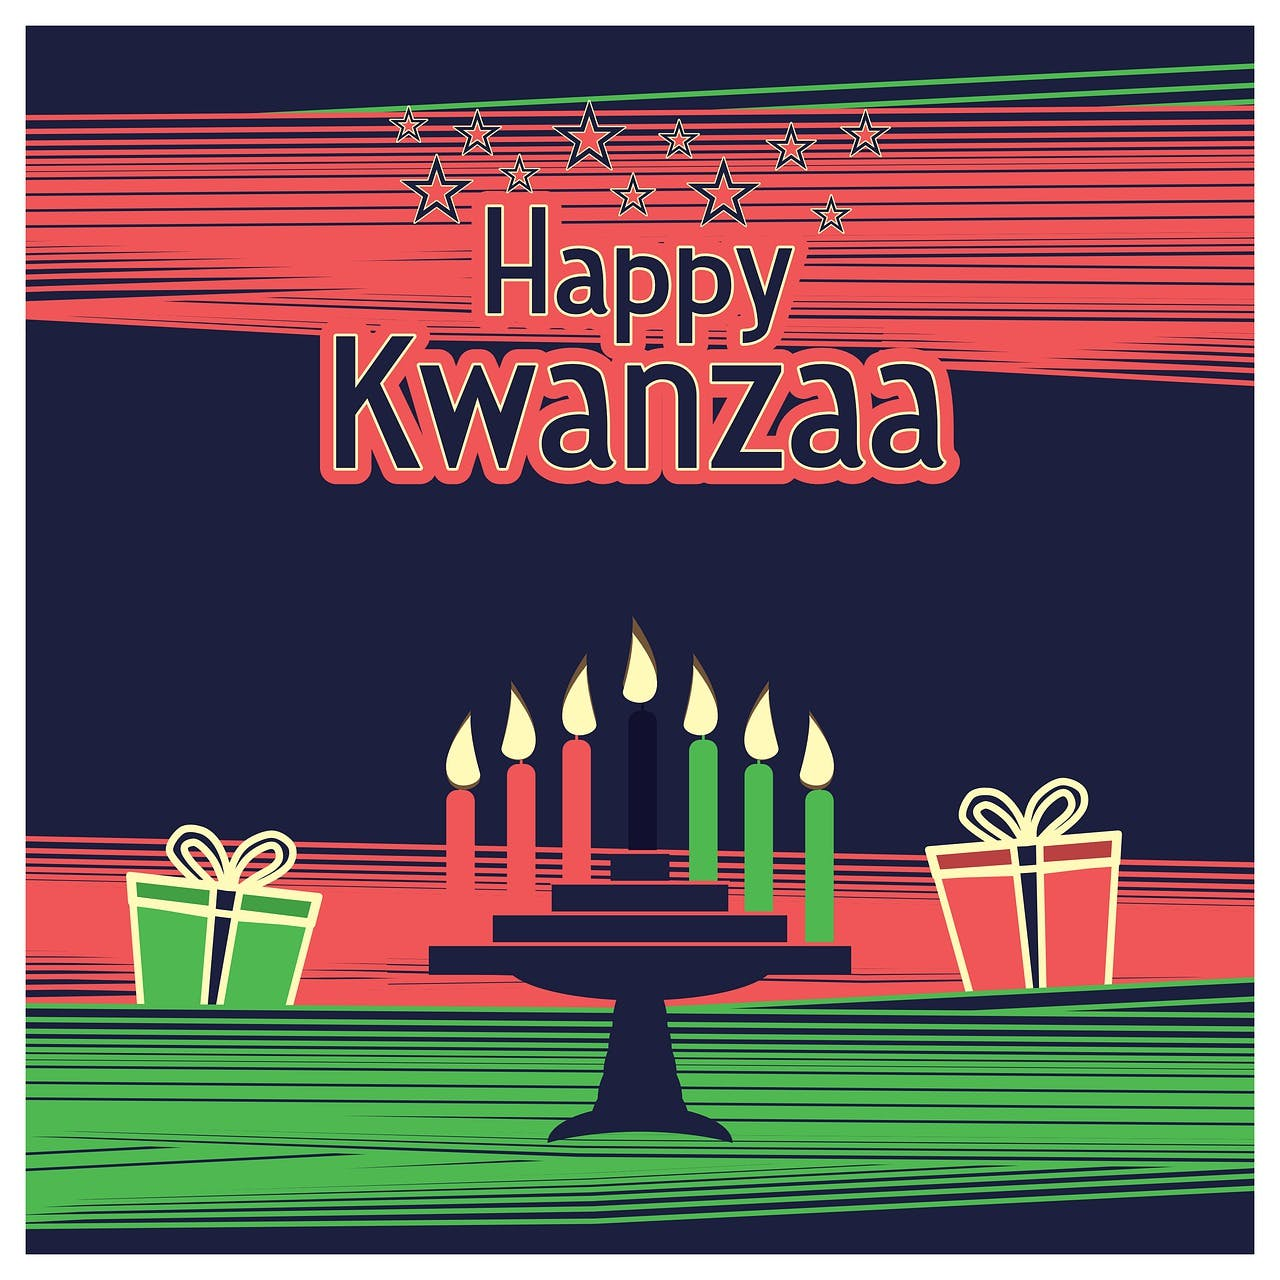 Seven lit Kwanzaa candles and two gifts